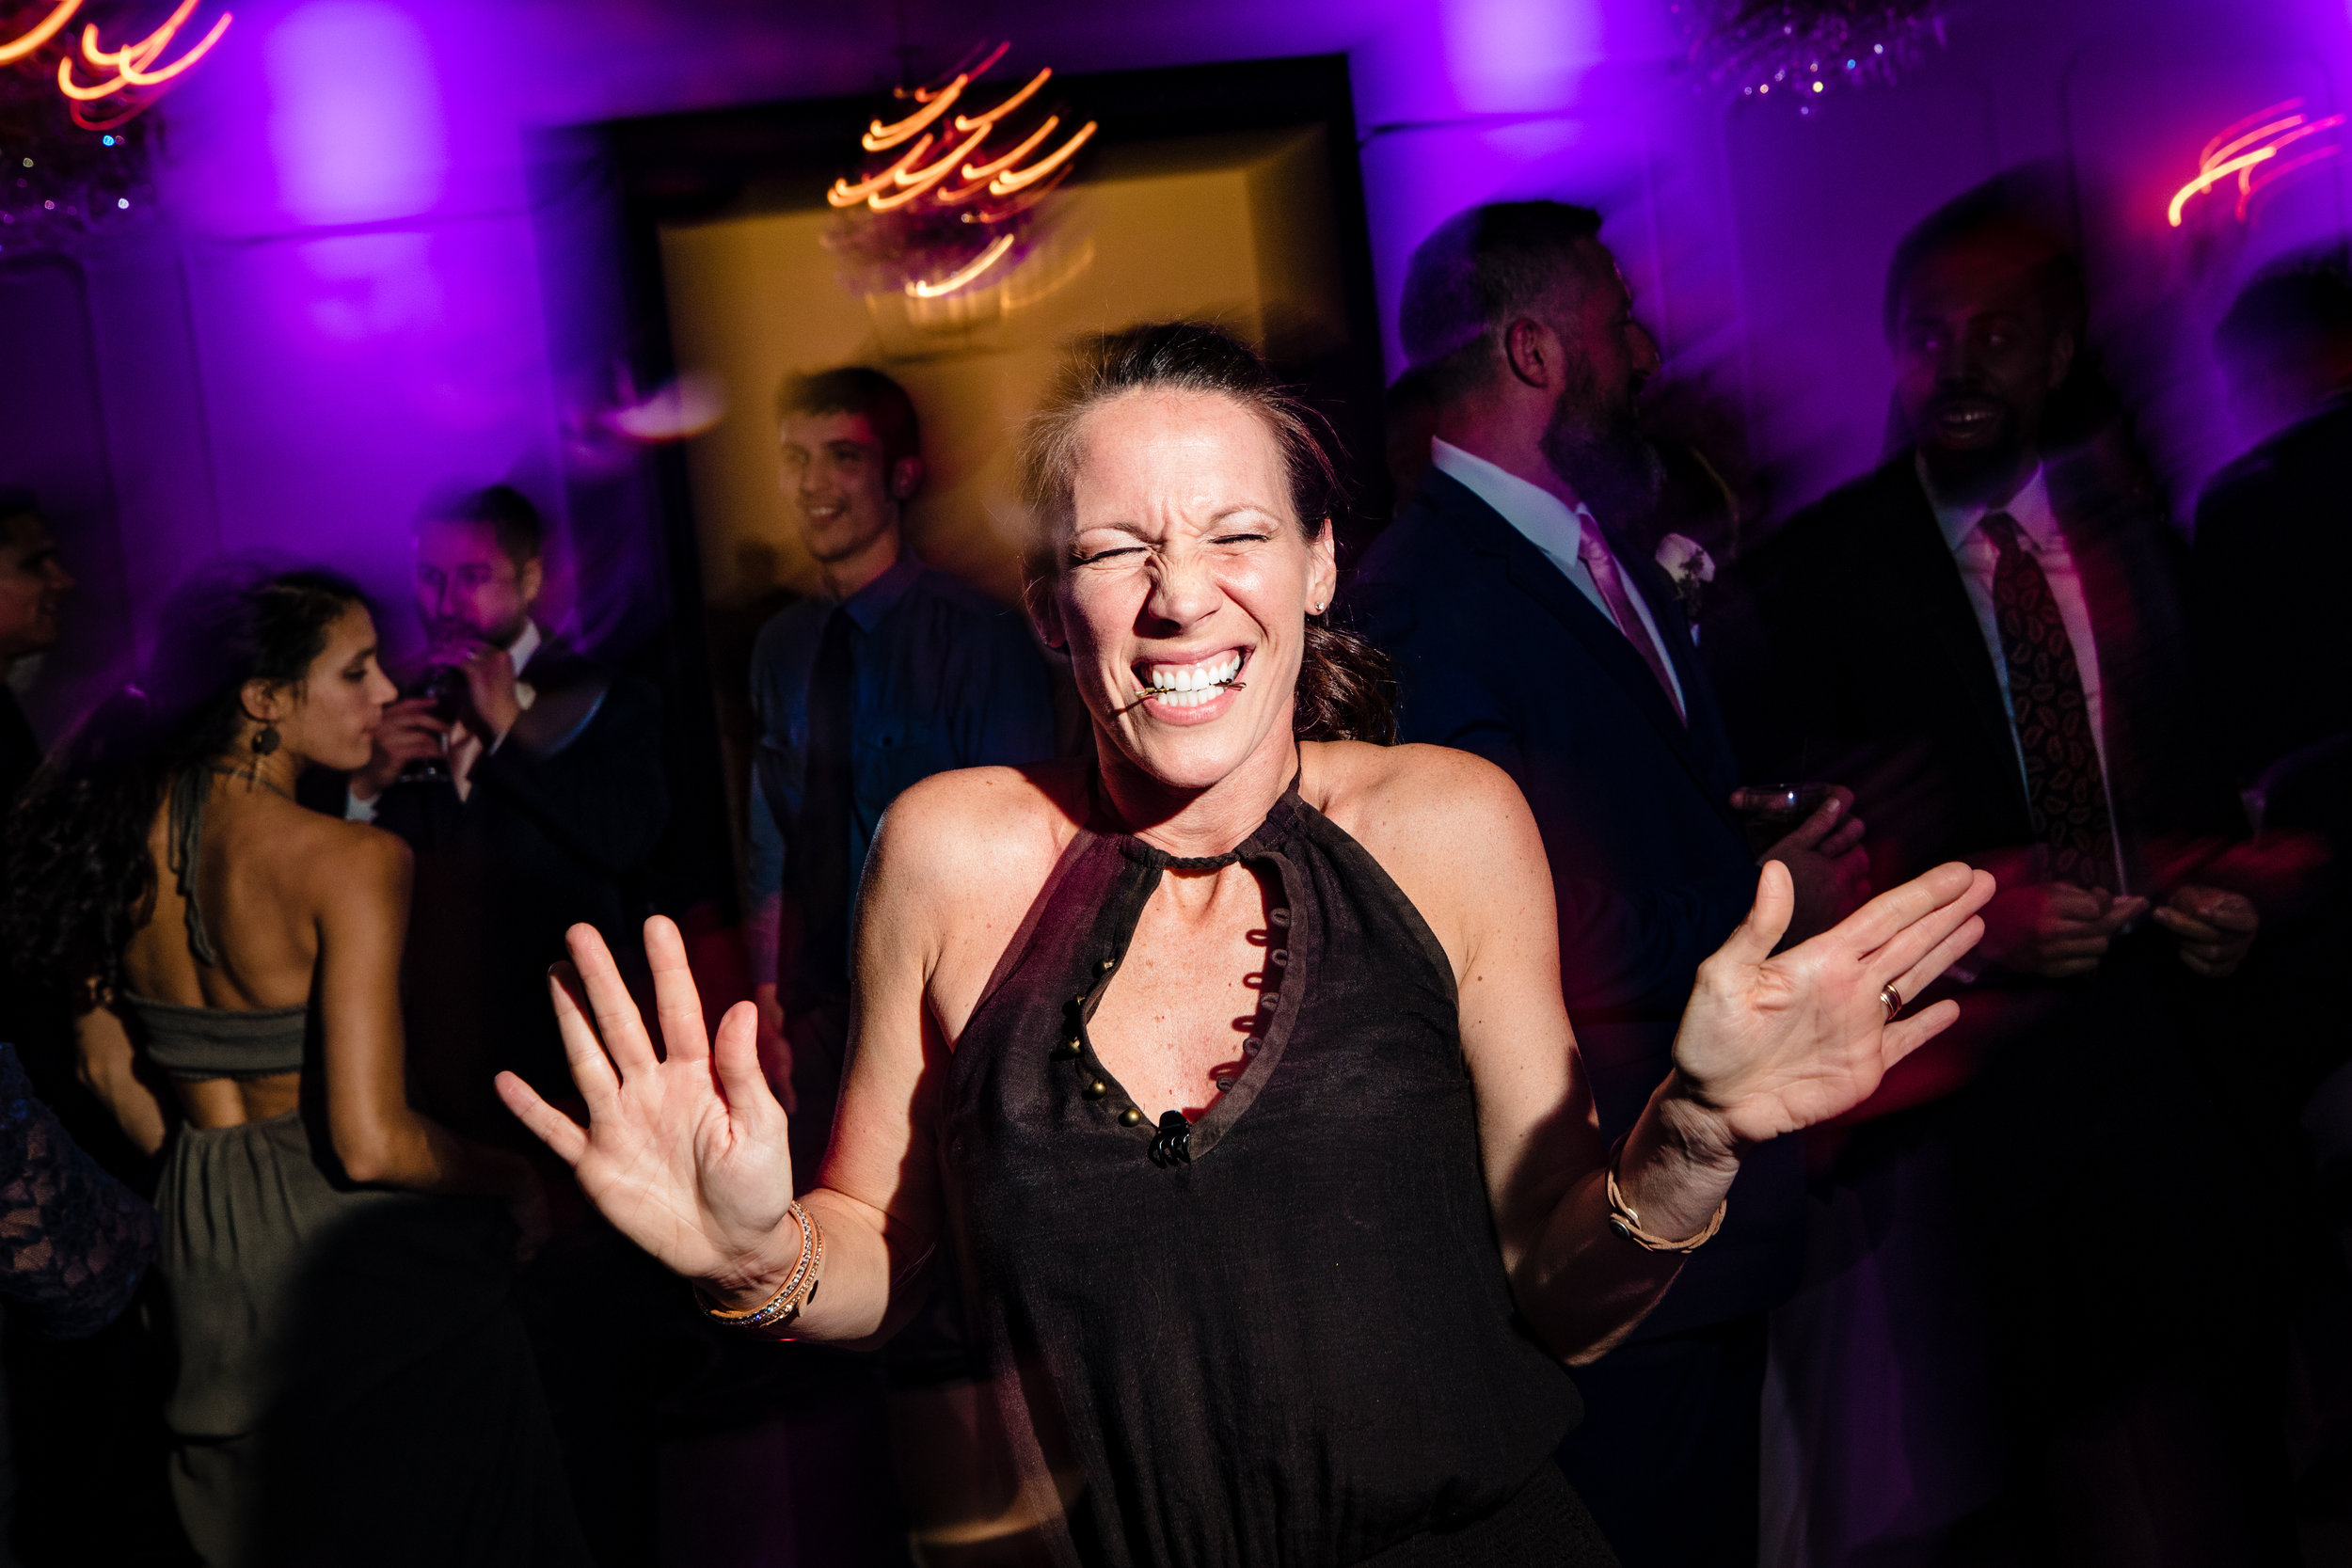 so much fun at this wedding on the dance floor